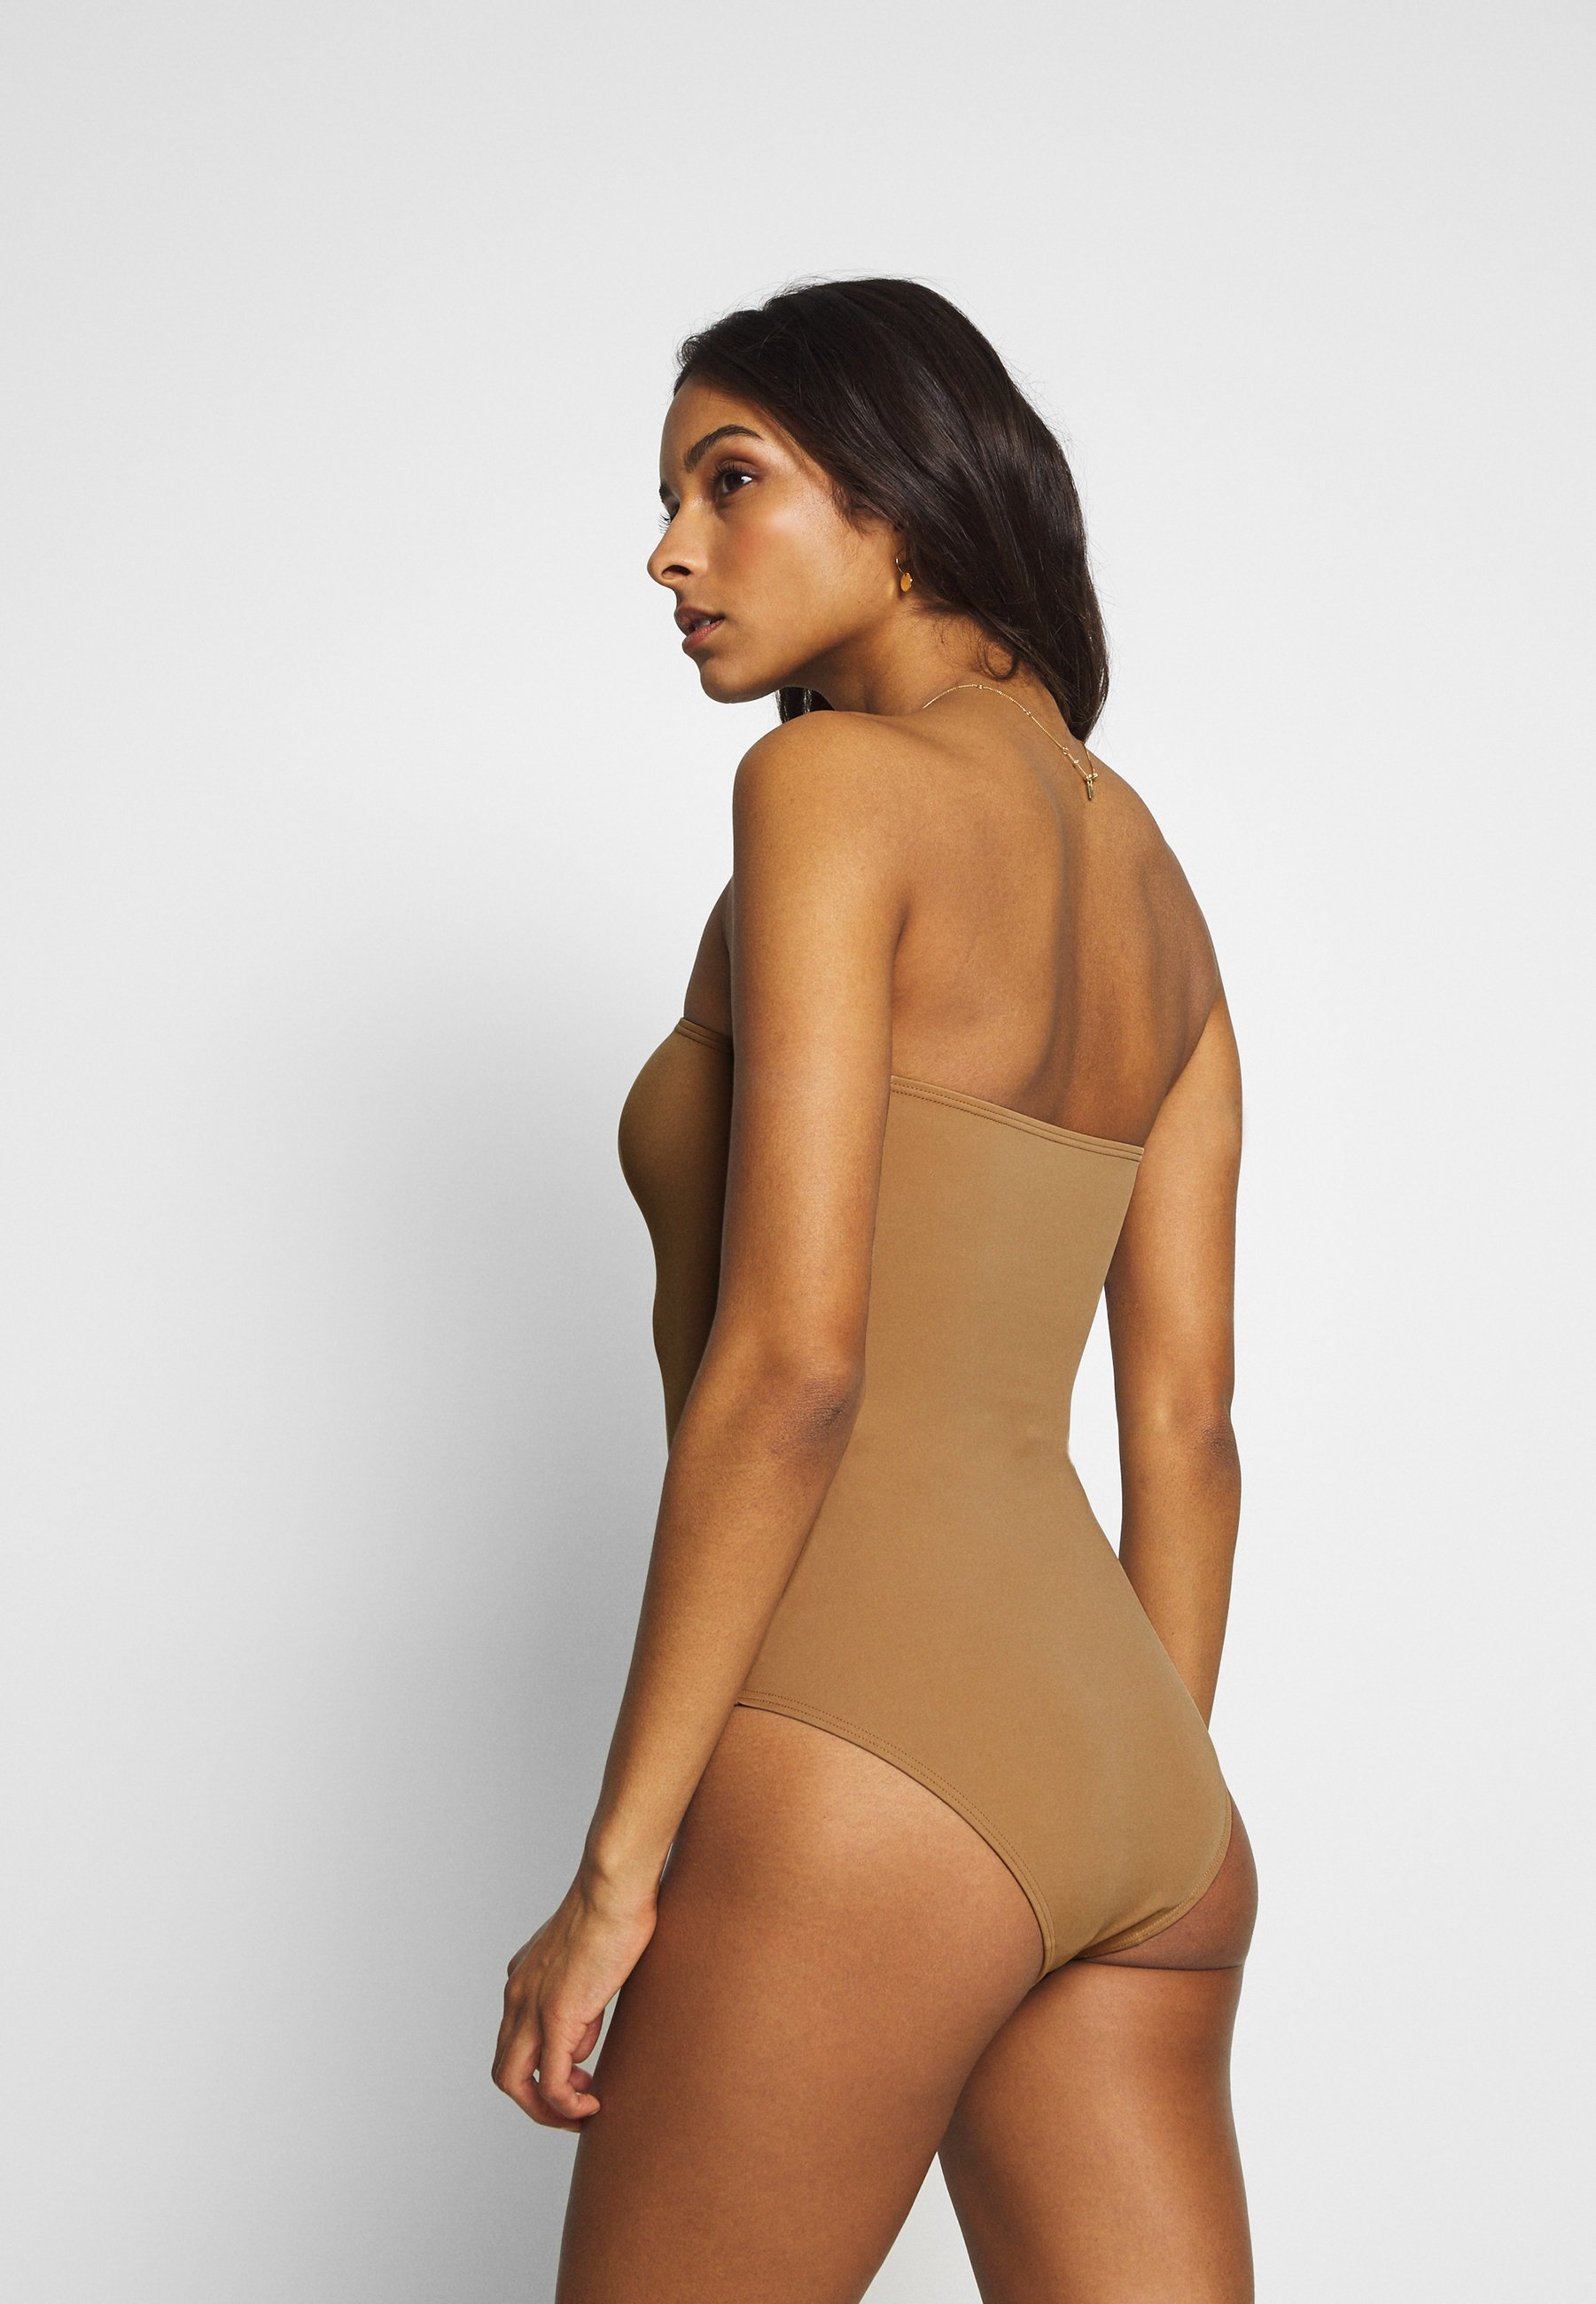 Ow Intimates Barbados Swimsuit - Badpak Tobacco Brown fZAgkmB